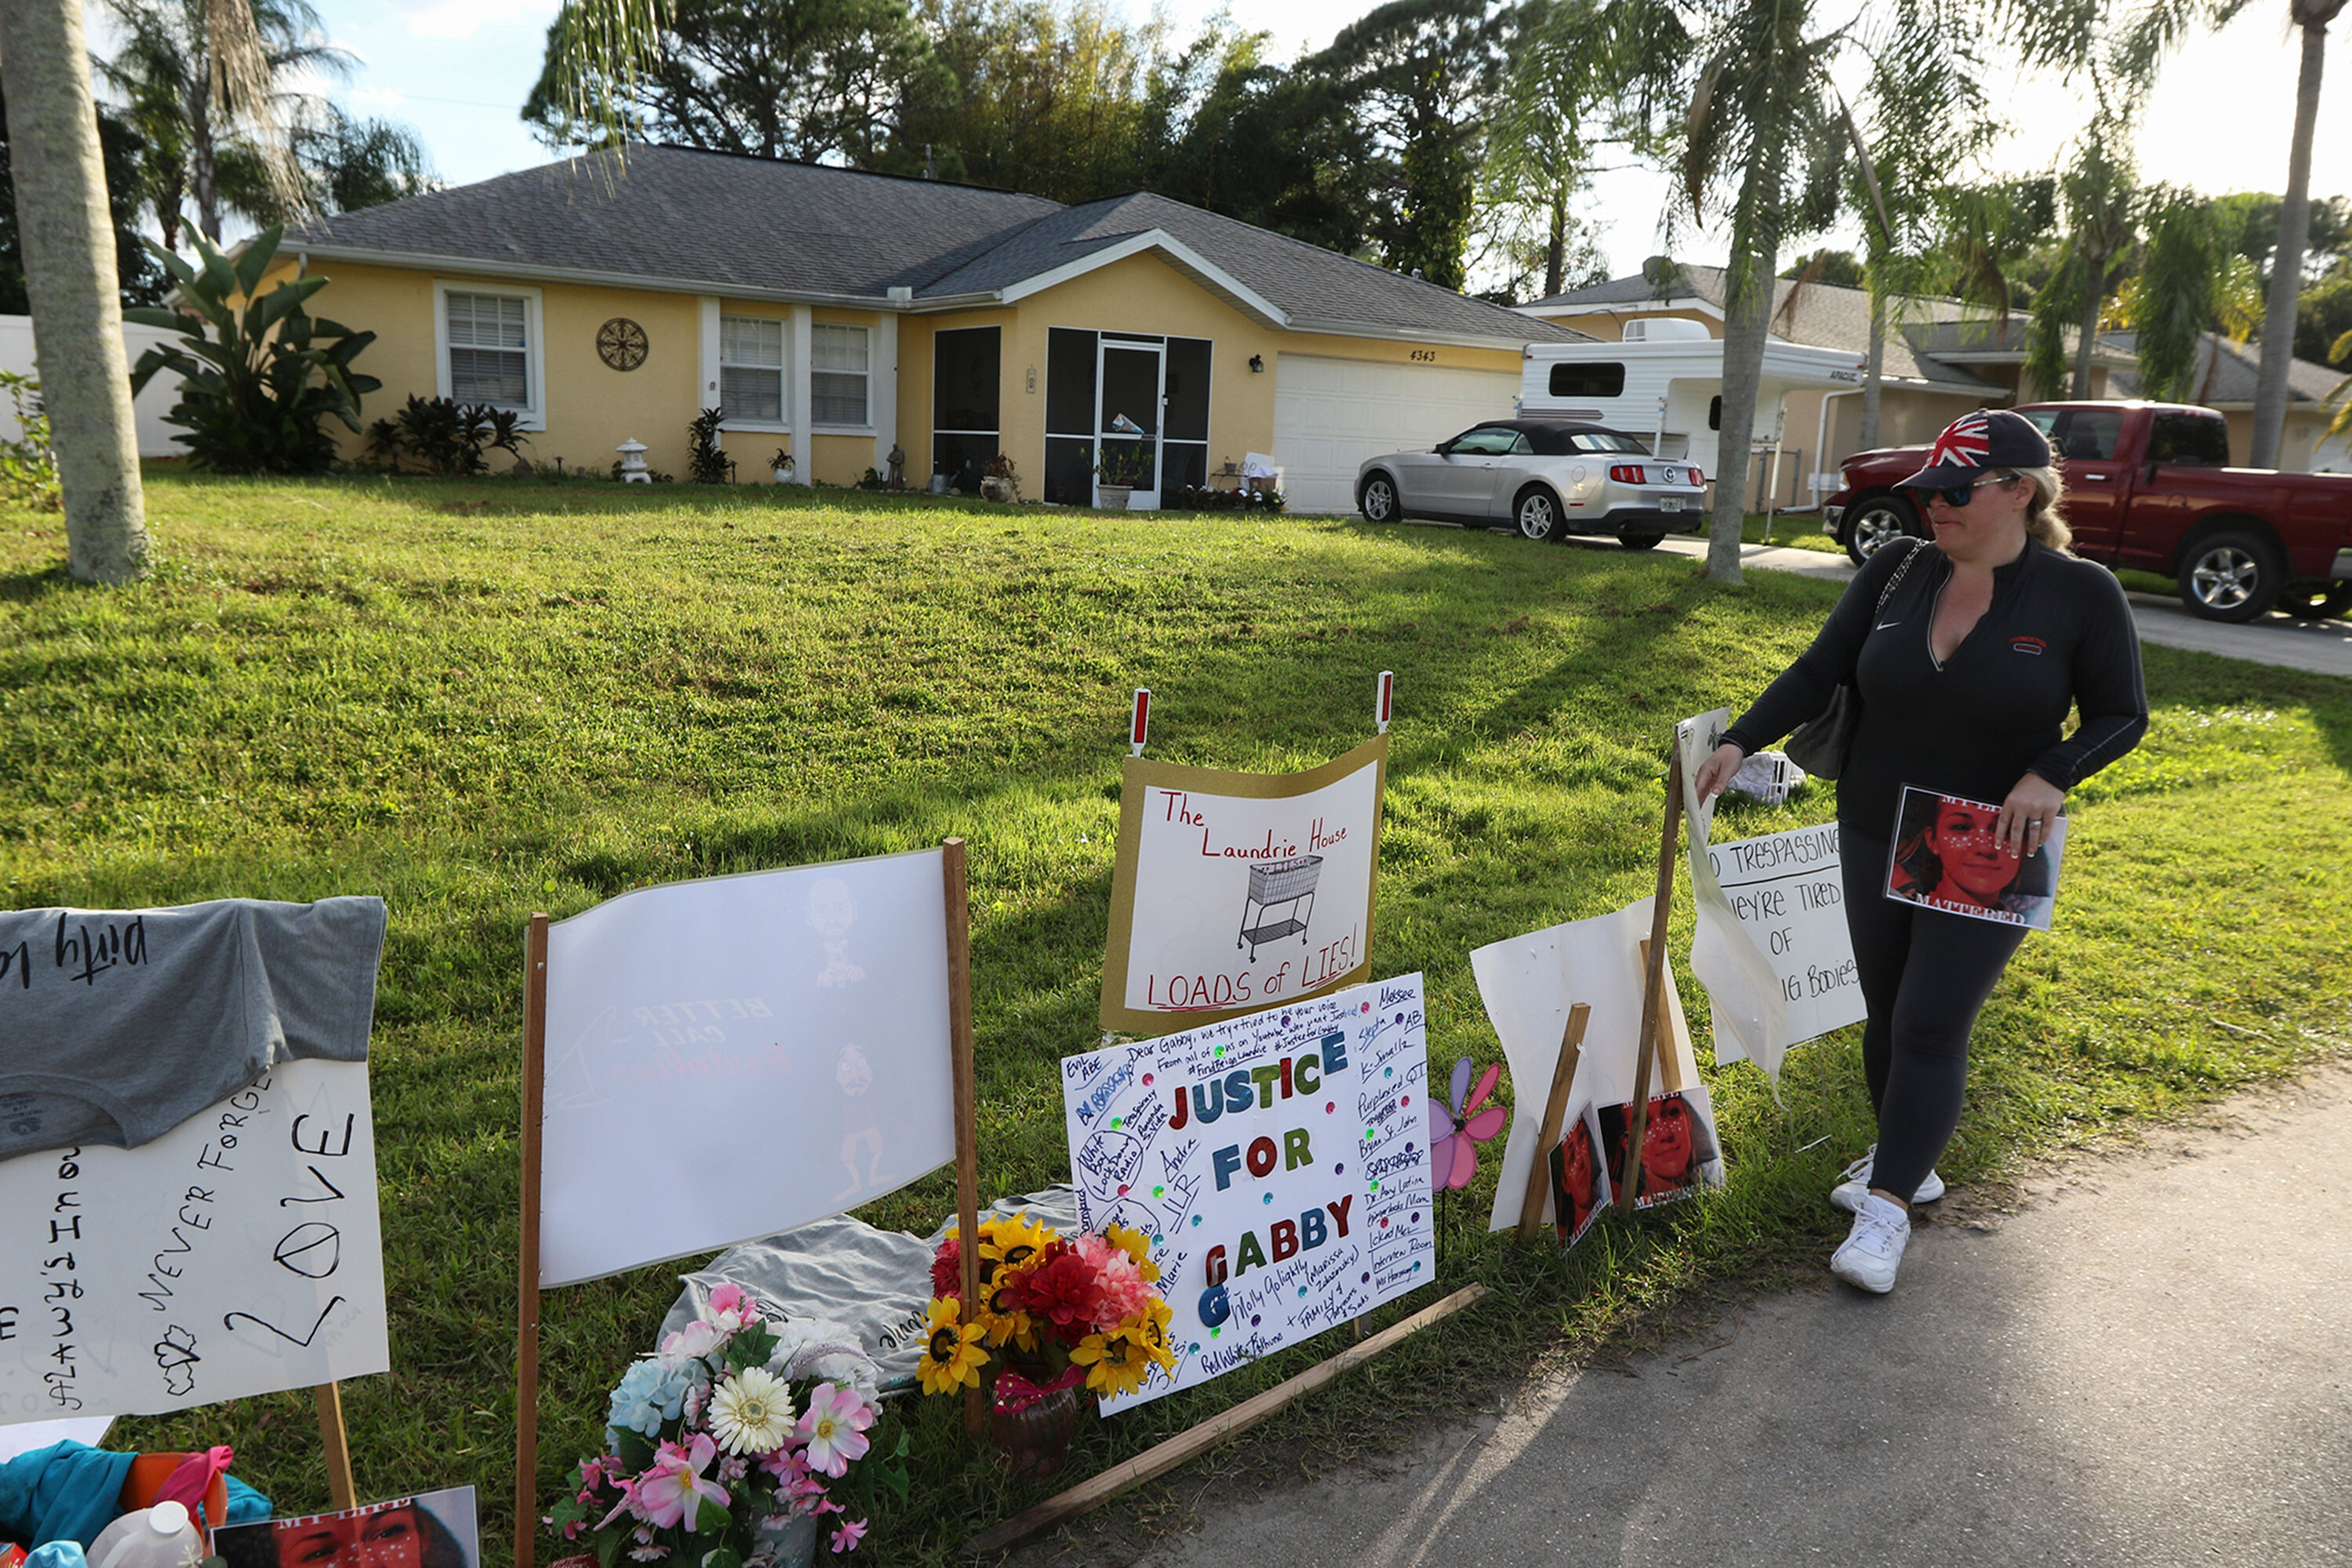 North Port officials remove Gabby Petito memorial from front lawn of Laundrie family property